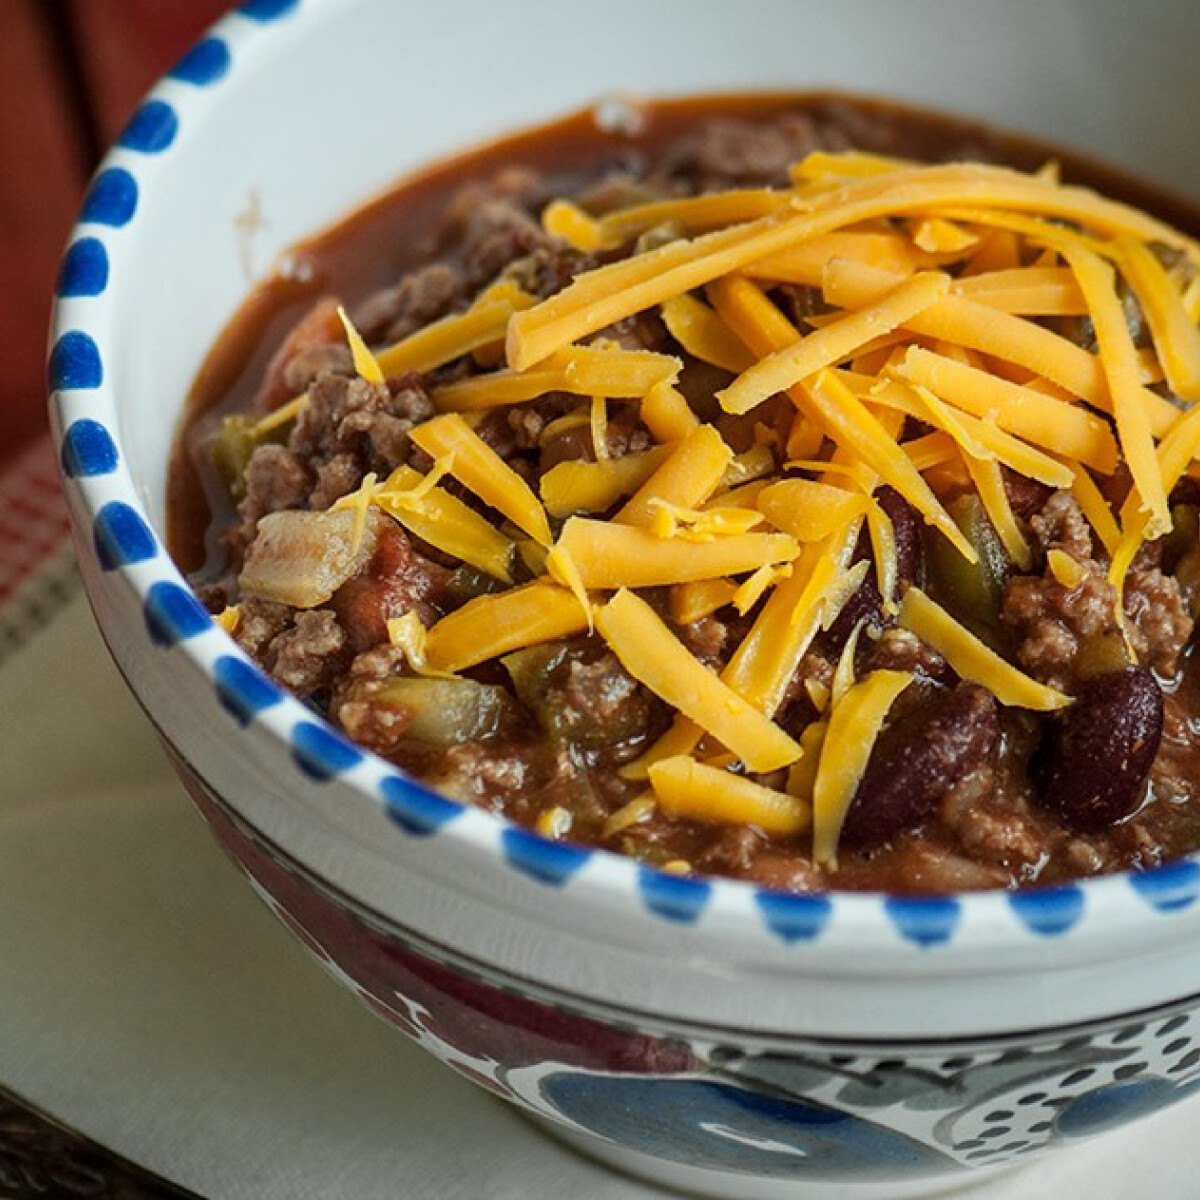 A Wendy's chili